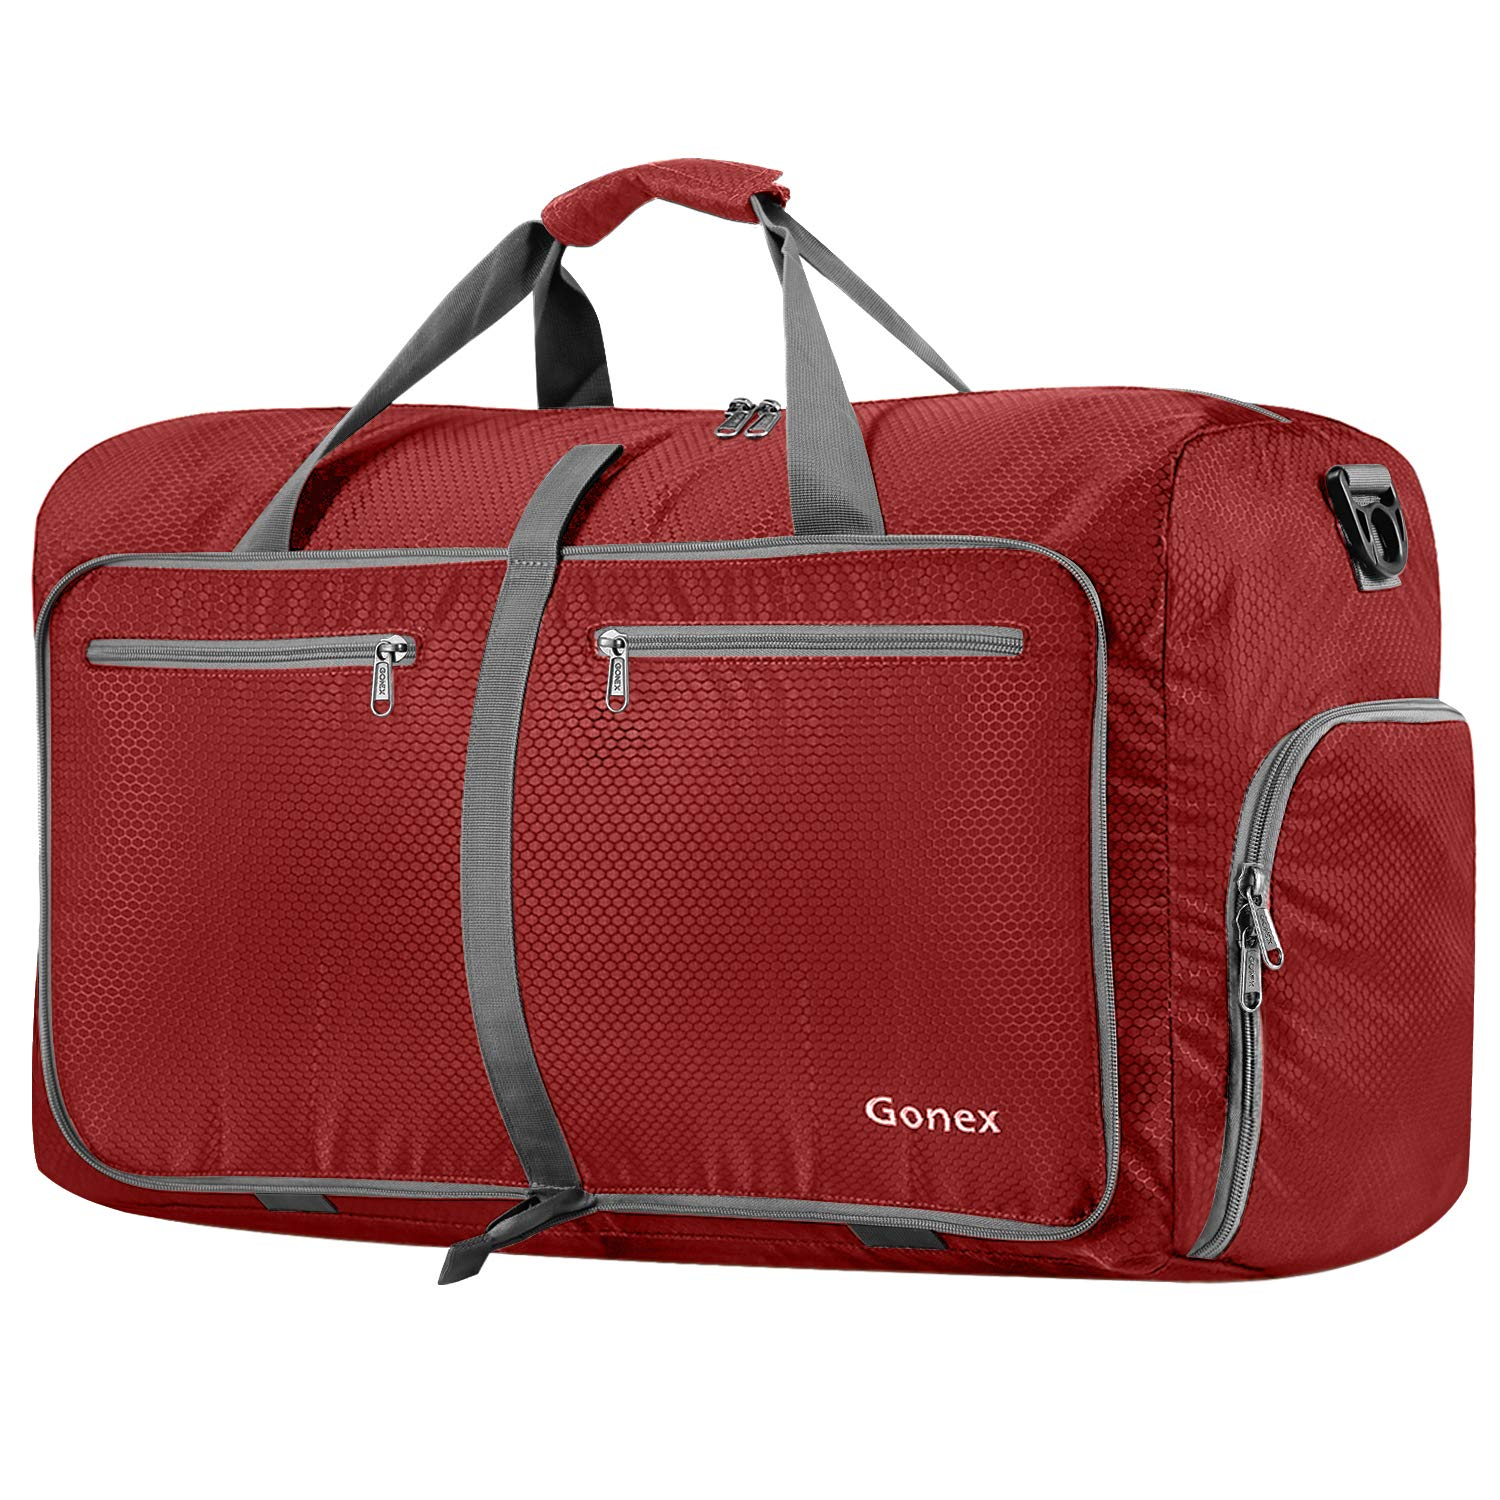 Gonex 80L Foldable Travel Duffle Bag for Luggage, Gym, Sport, Camping, Storage, Shopping Water Repellent & Tear Resistant Red product image